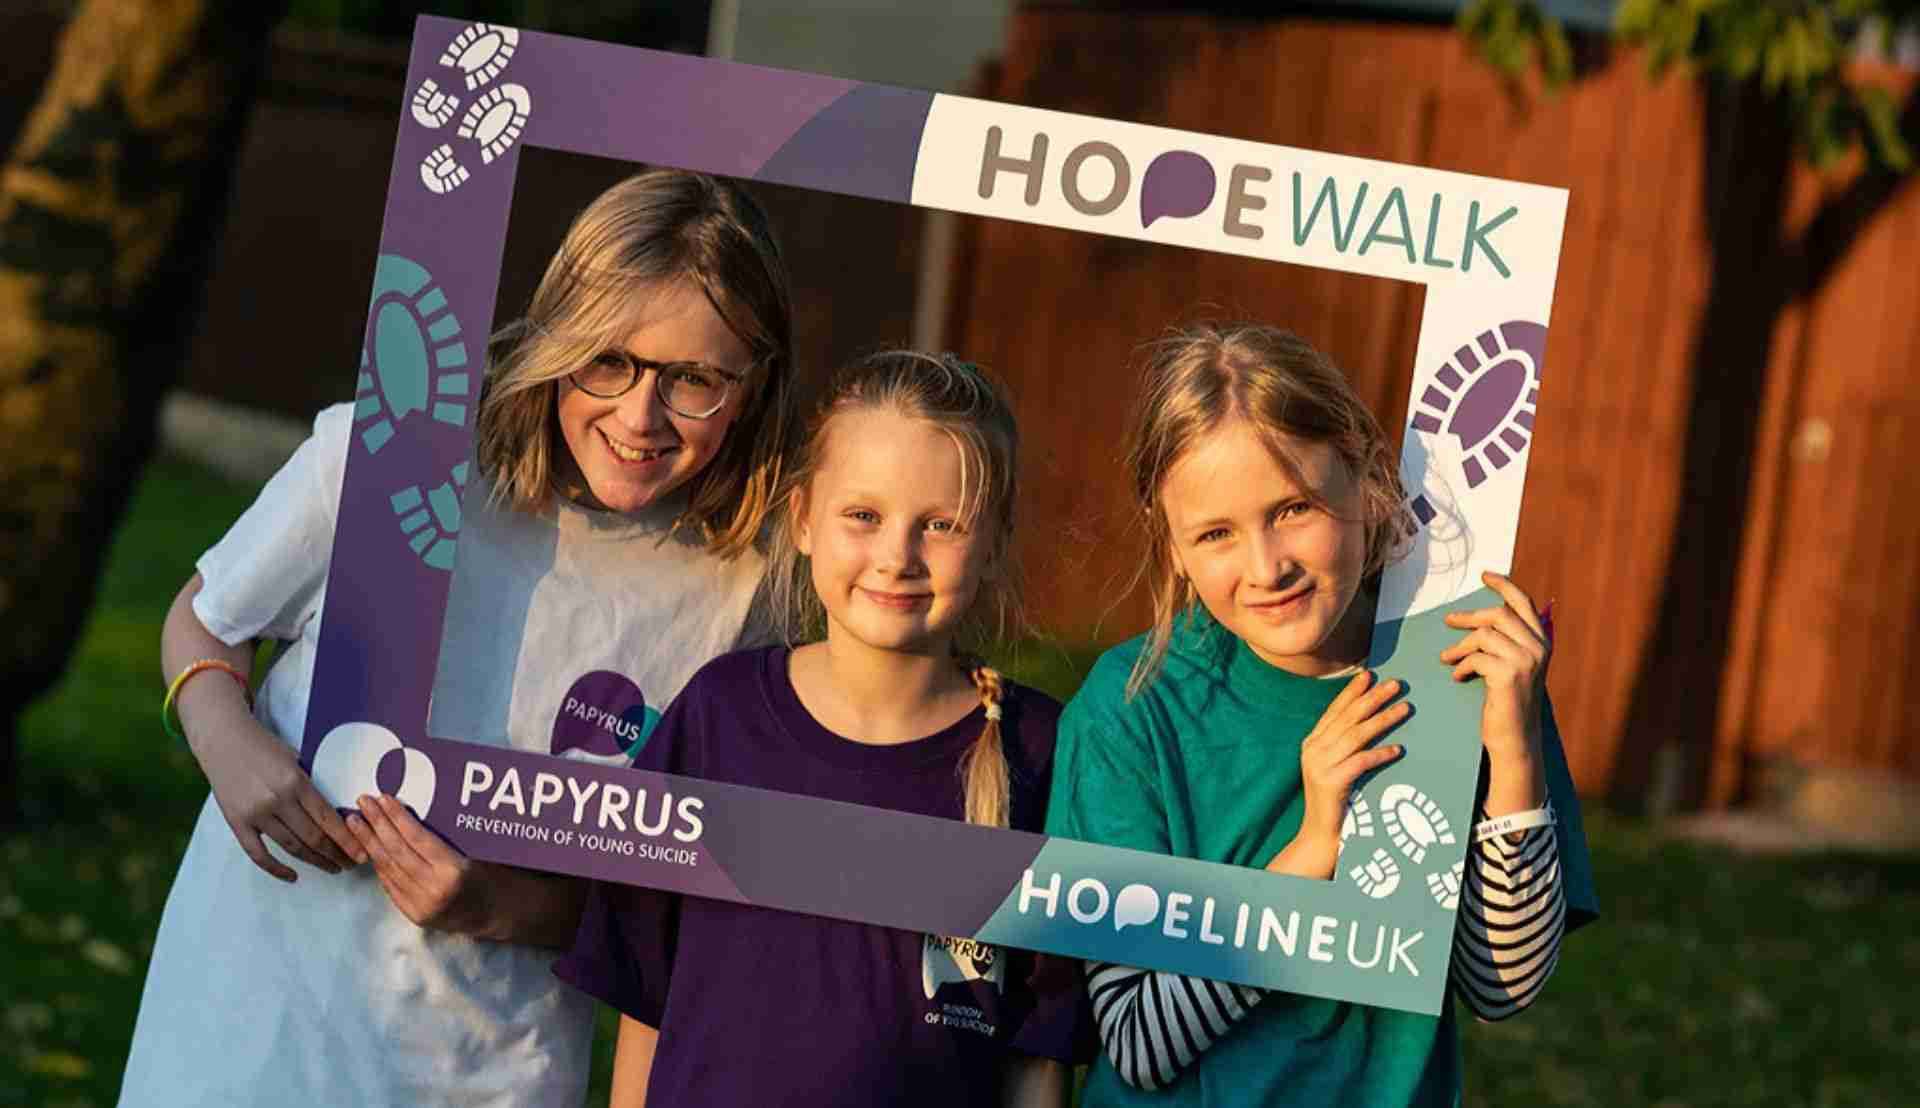 #HOPEWALK19 Make October a month to remember